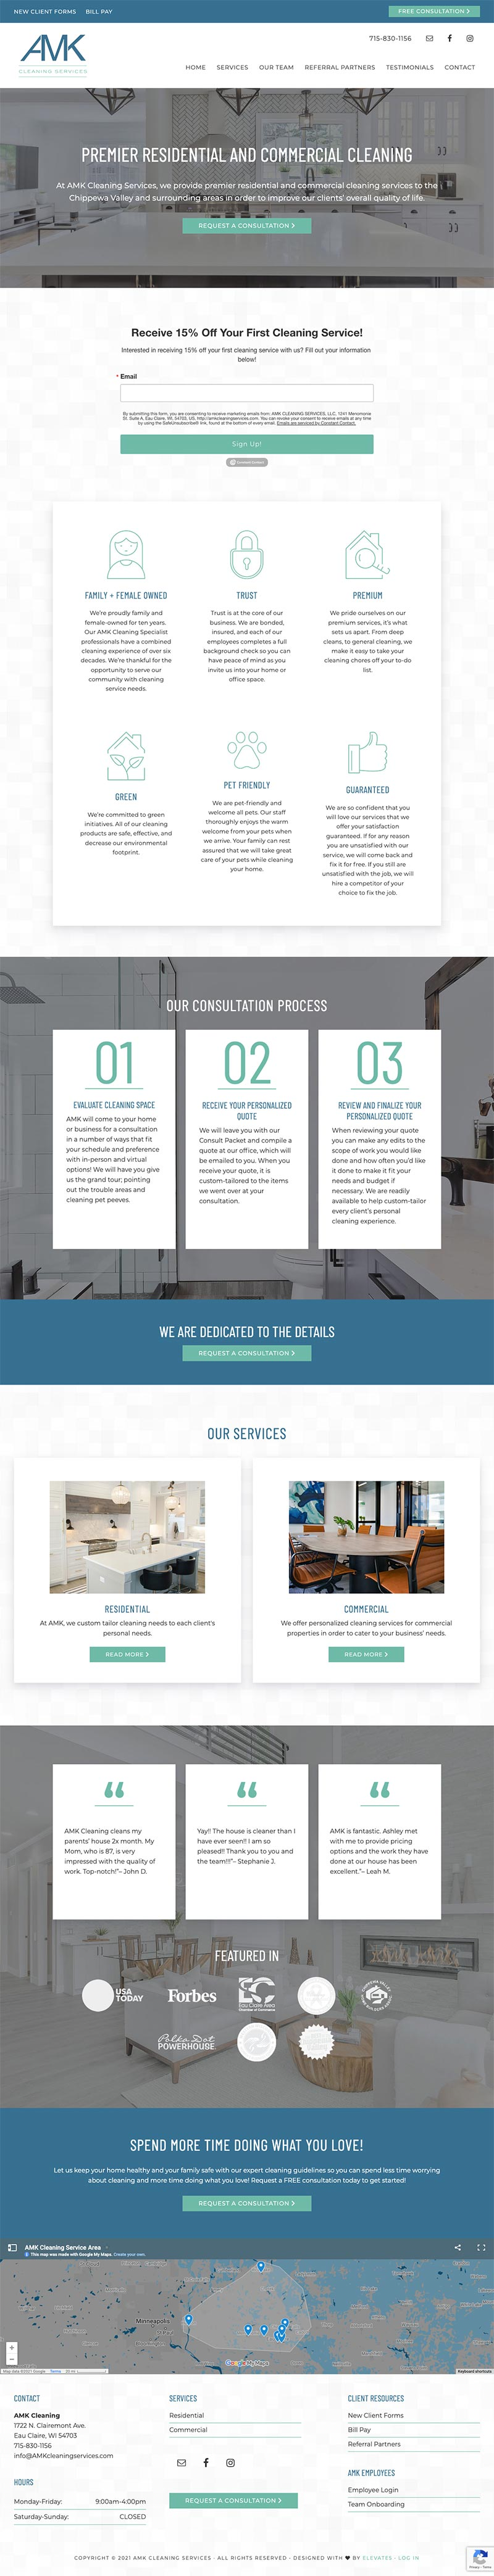 AMK Cleaning Services